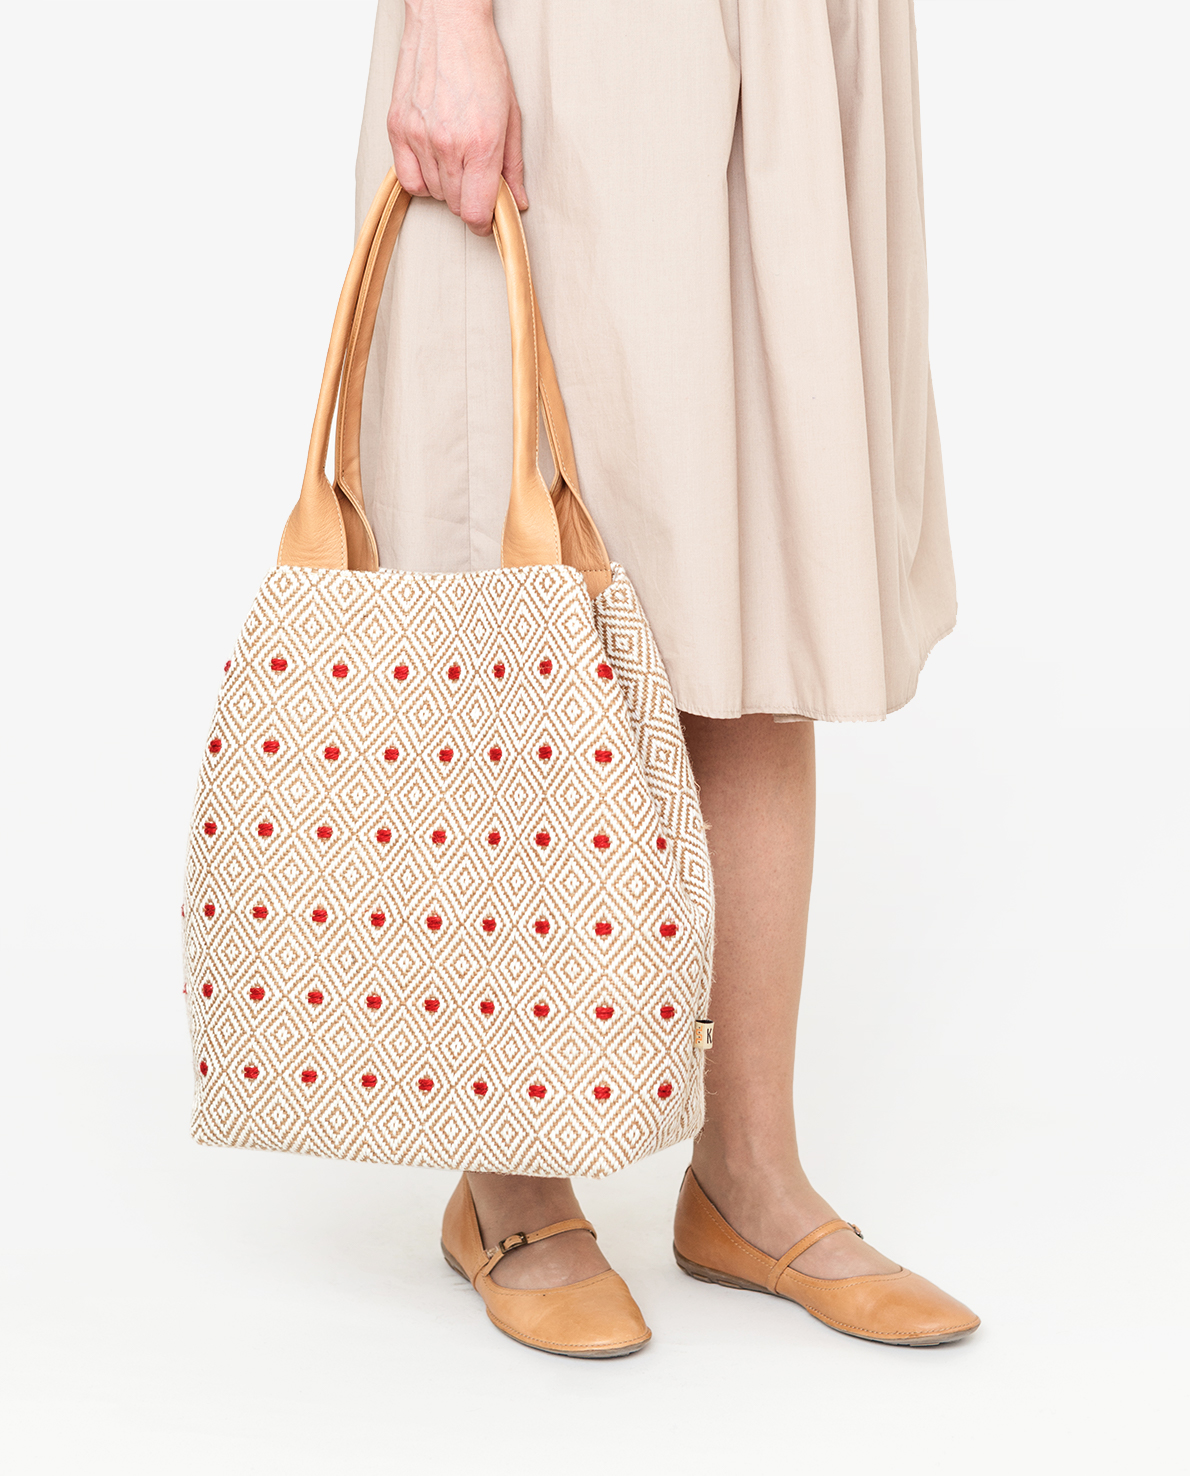 Tote bag with red dots